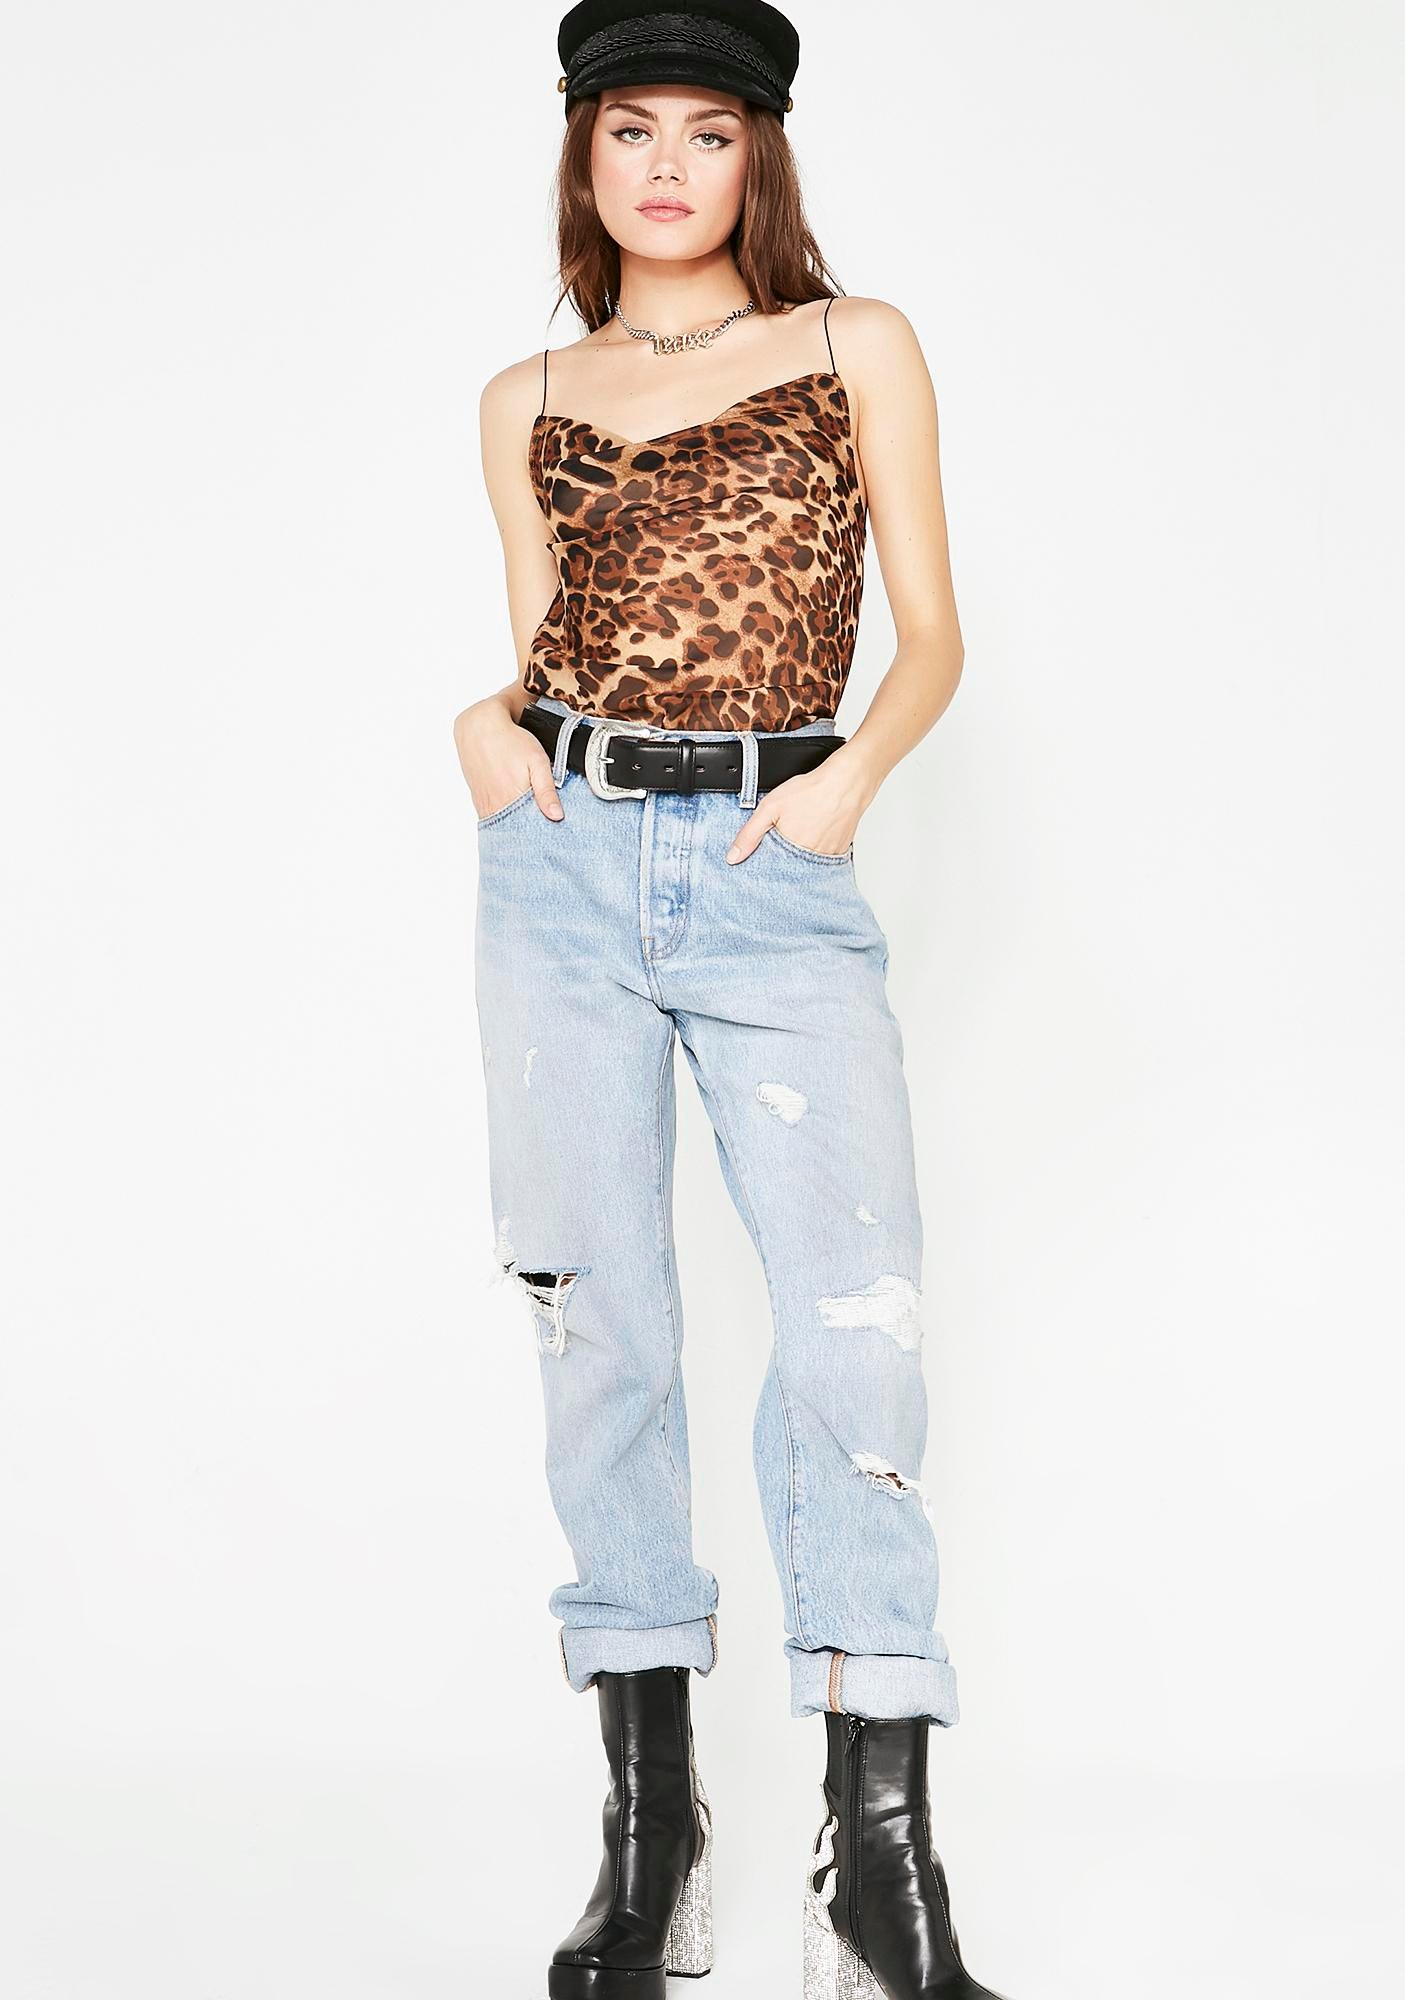 Catty Qween Leopard Top